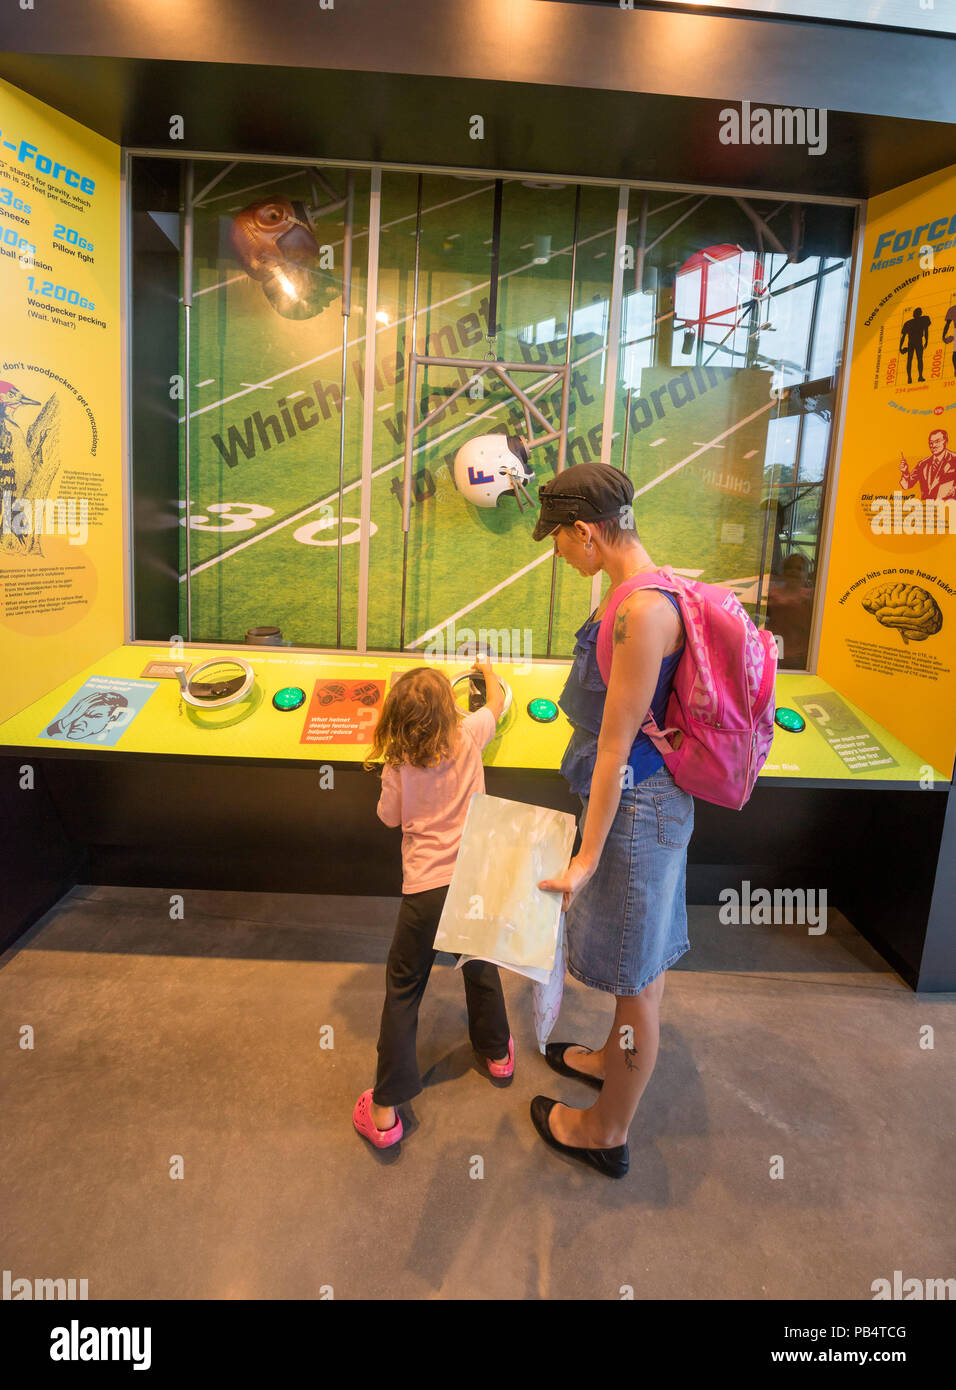 Creativity and Invention Museum in Gainesville, Florida. - Stock Image